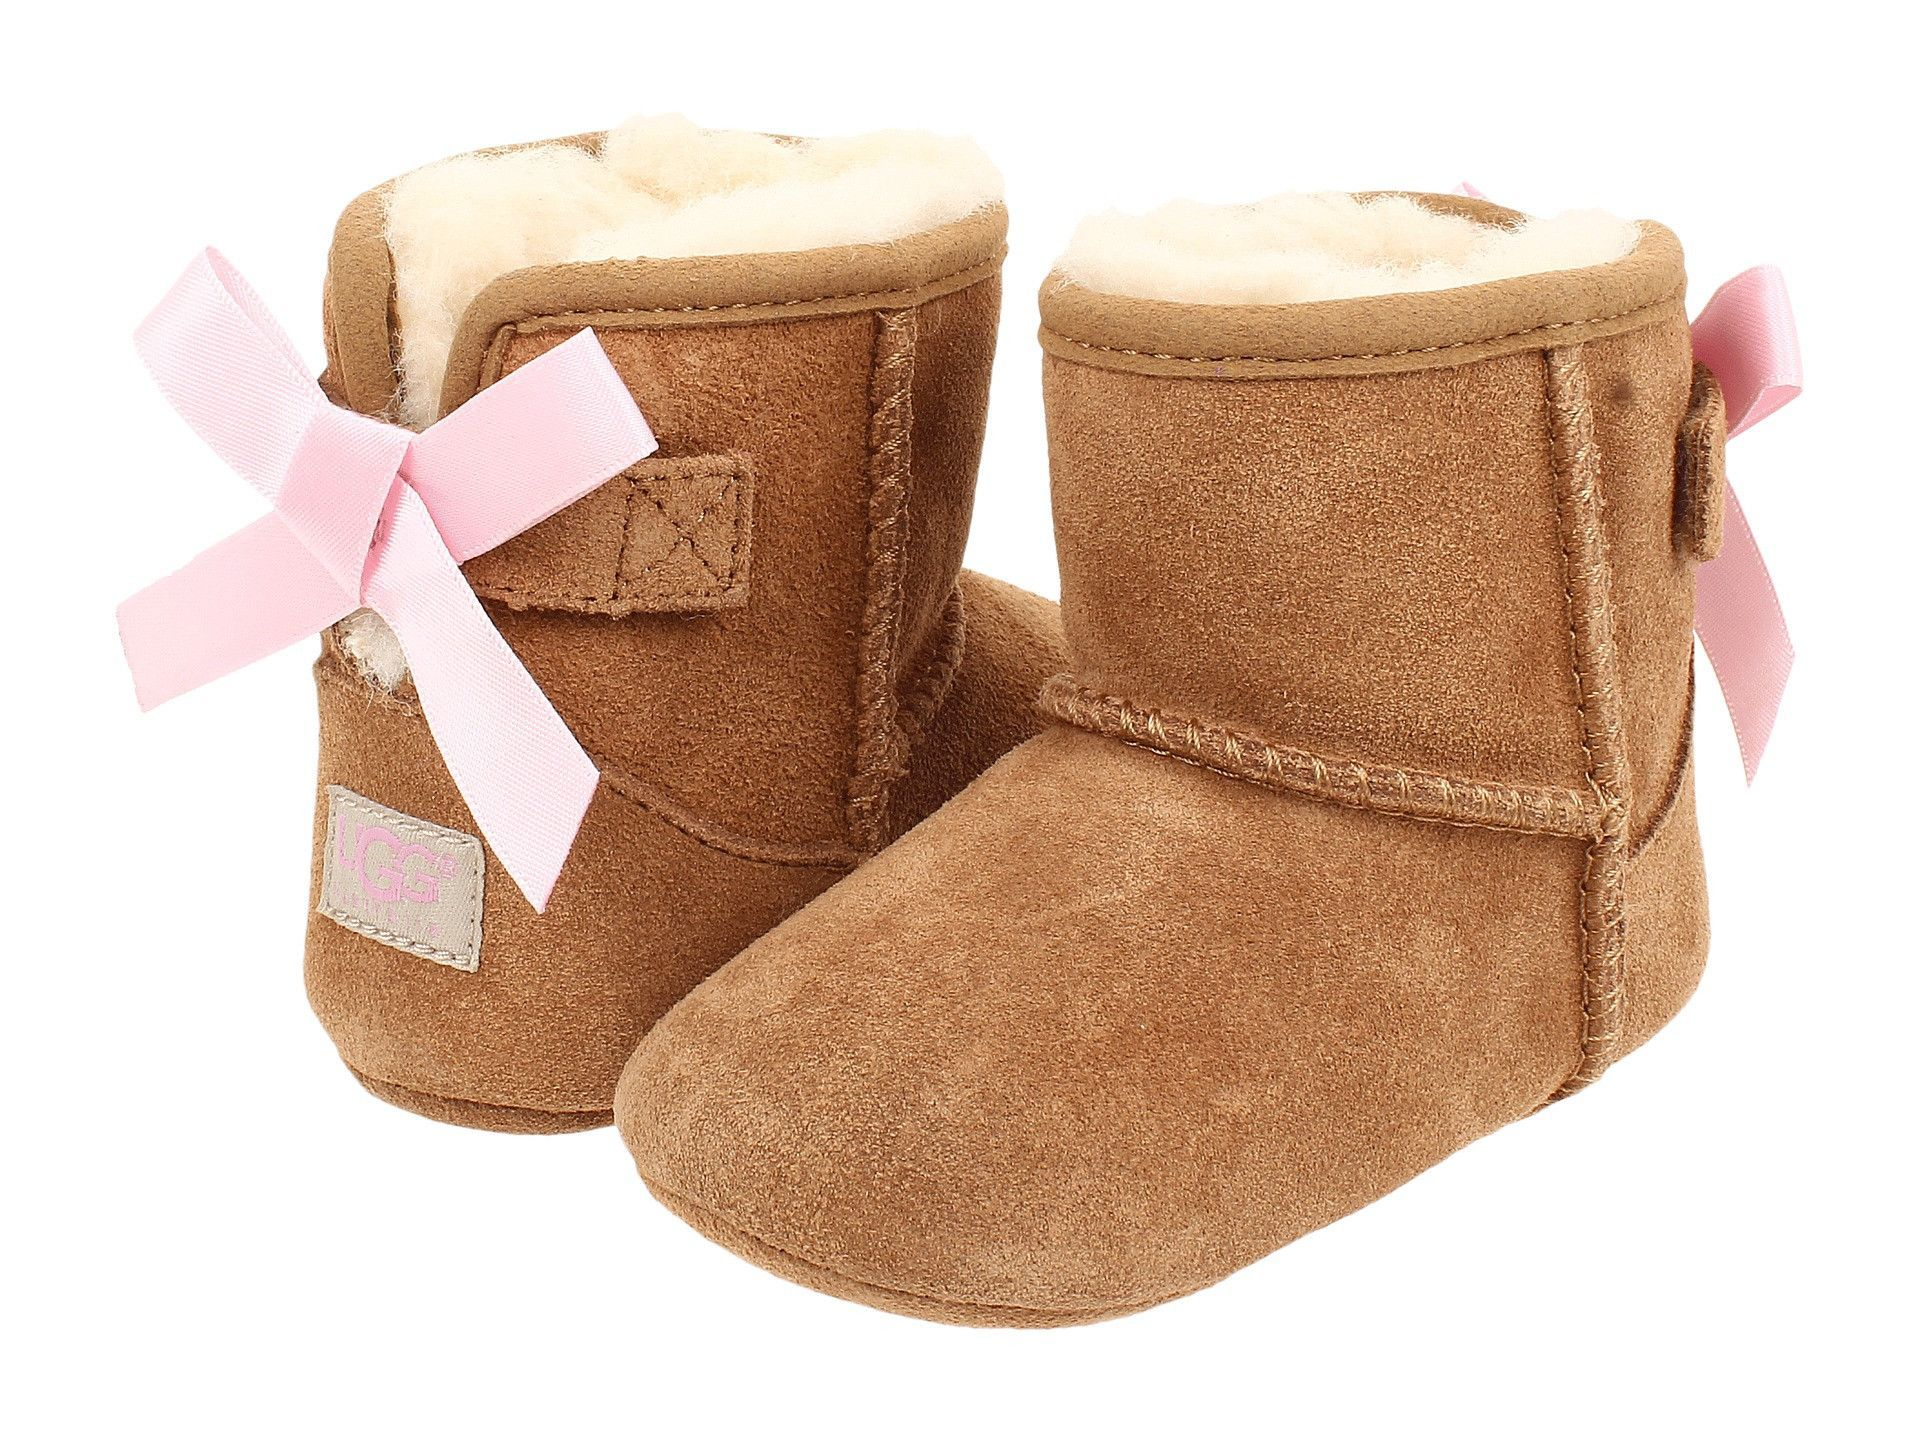 The Jesse Bow by Ugg in chestnut suede is lined in plush natural wool for foot-pampering comfort with a pink satin bow which adorably finishes this sweet ...